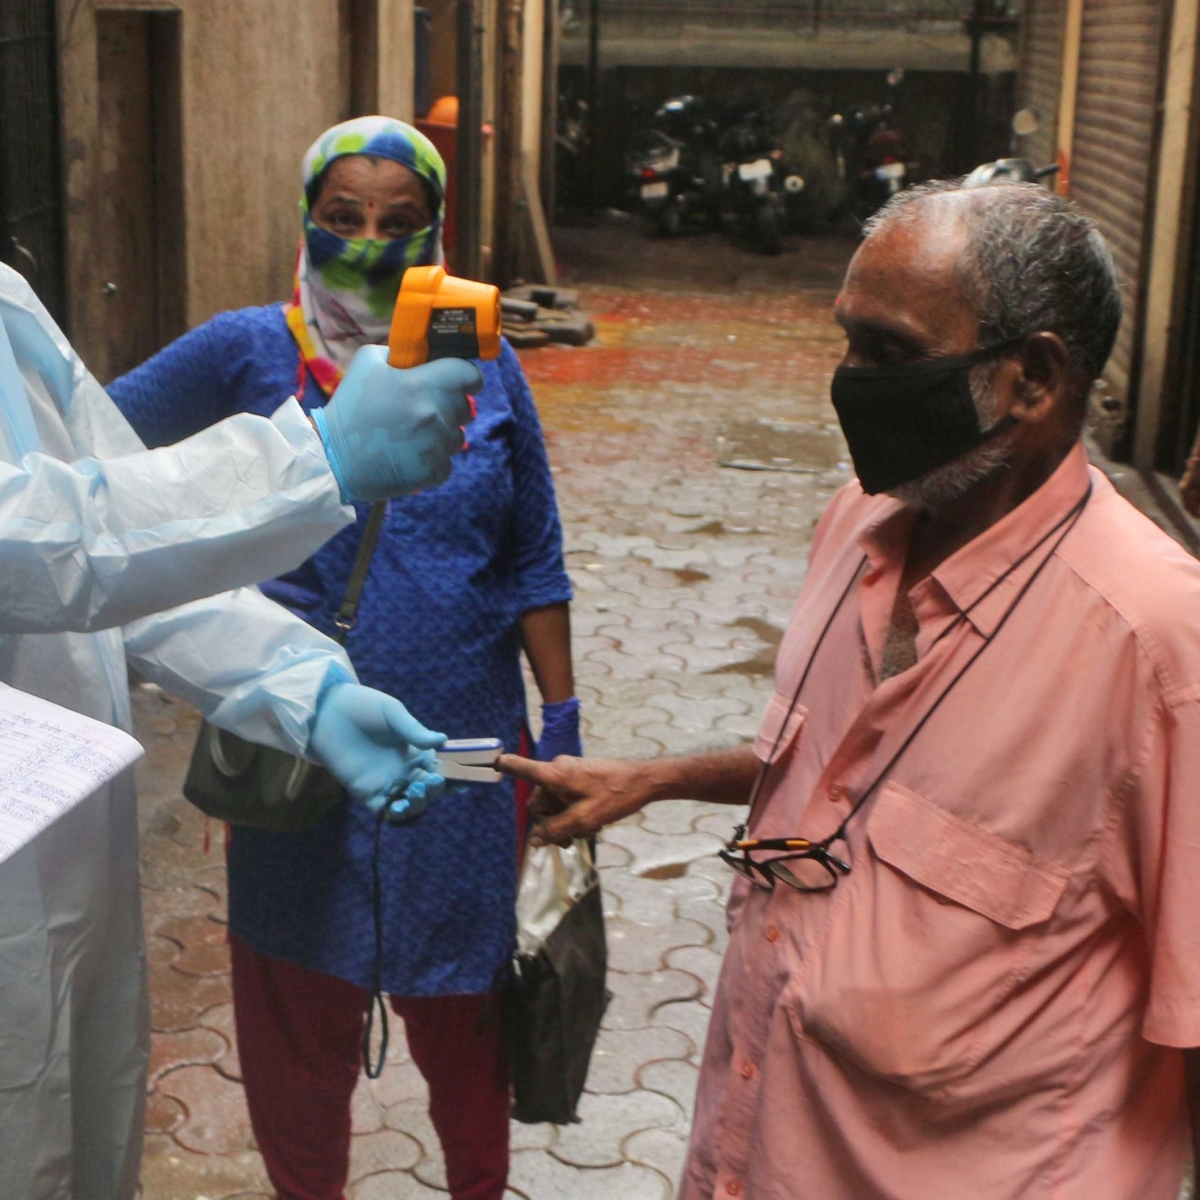 Coronavirus in Pune and Pimpri Chinchwad: PMC's COVID-19 tally rises by 202, PCMC records 137 cases